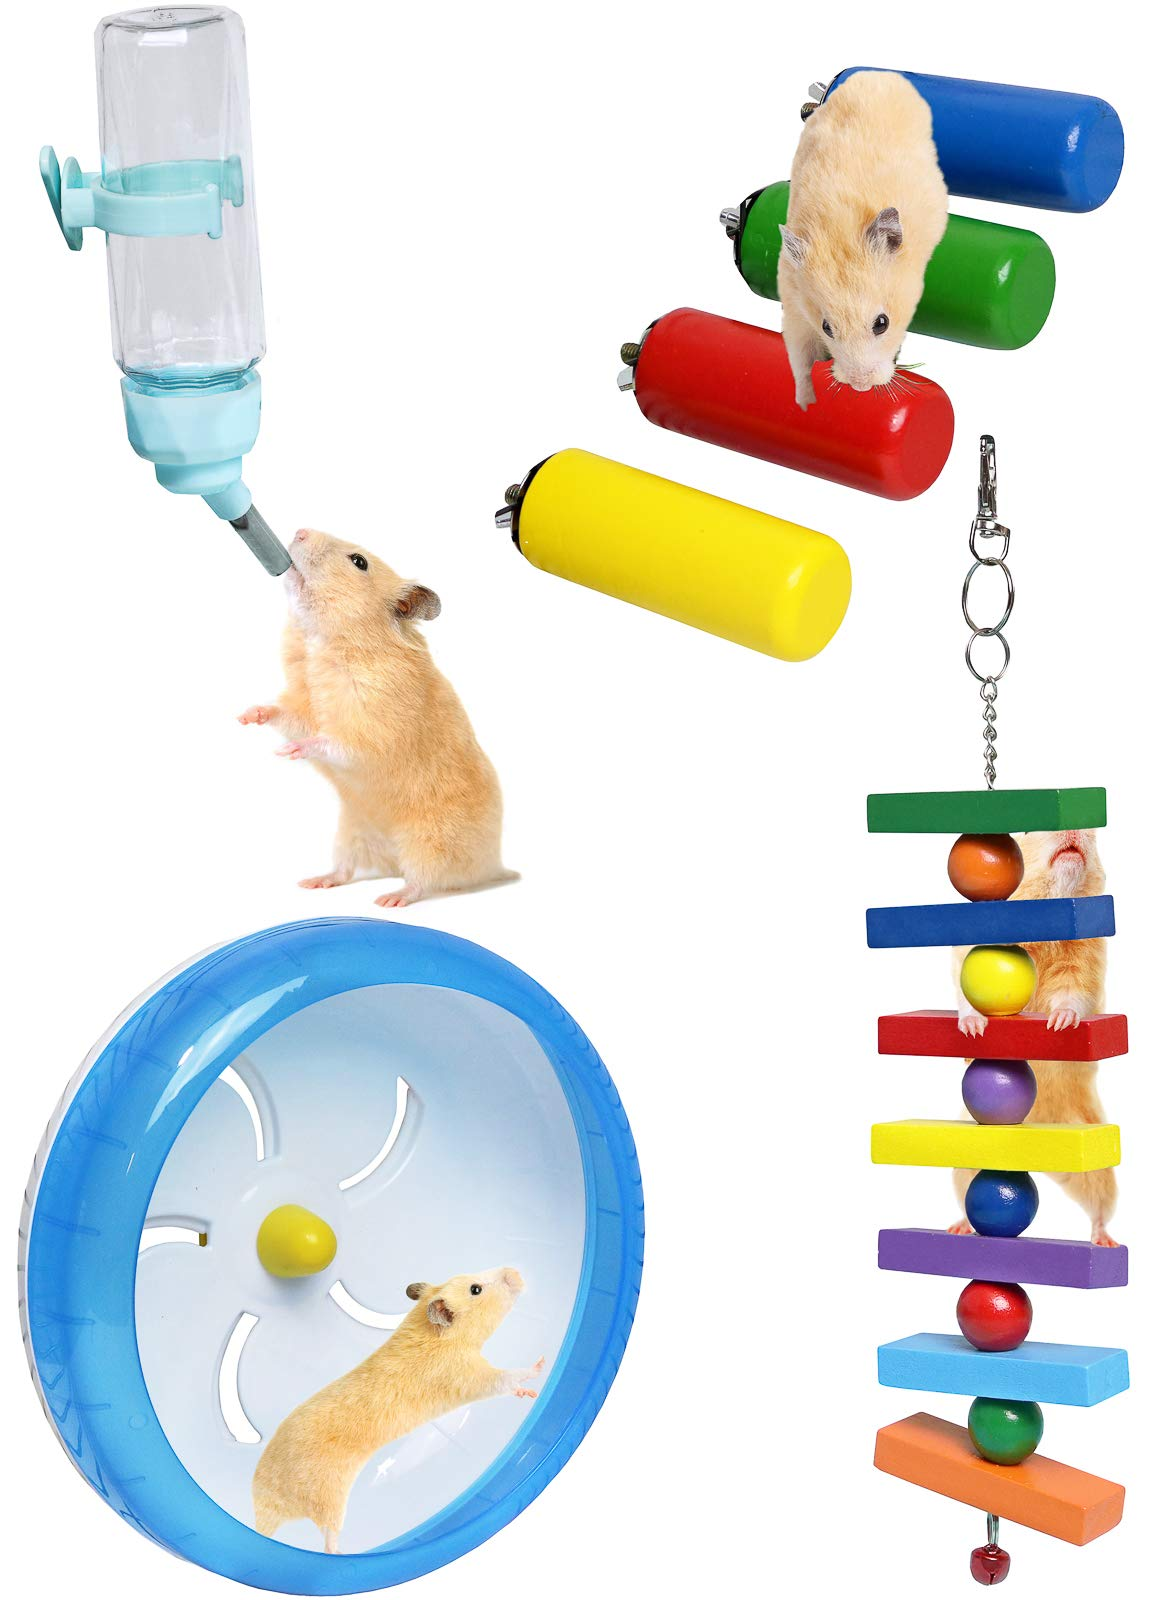 GalaPet Small Animal Hamster Cage Accessories and Toys with Exercise Wheel and Water Bottle by GalaPet